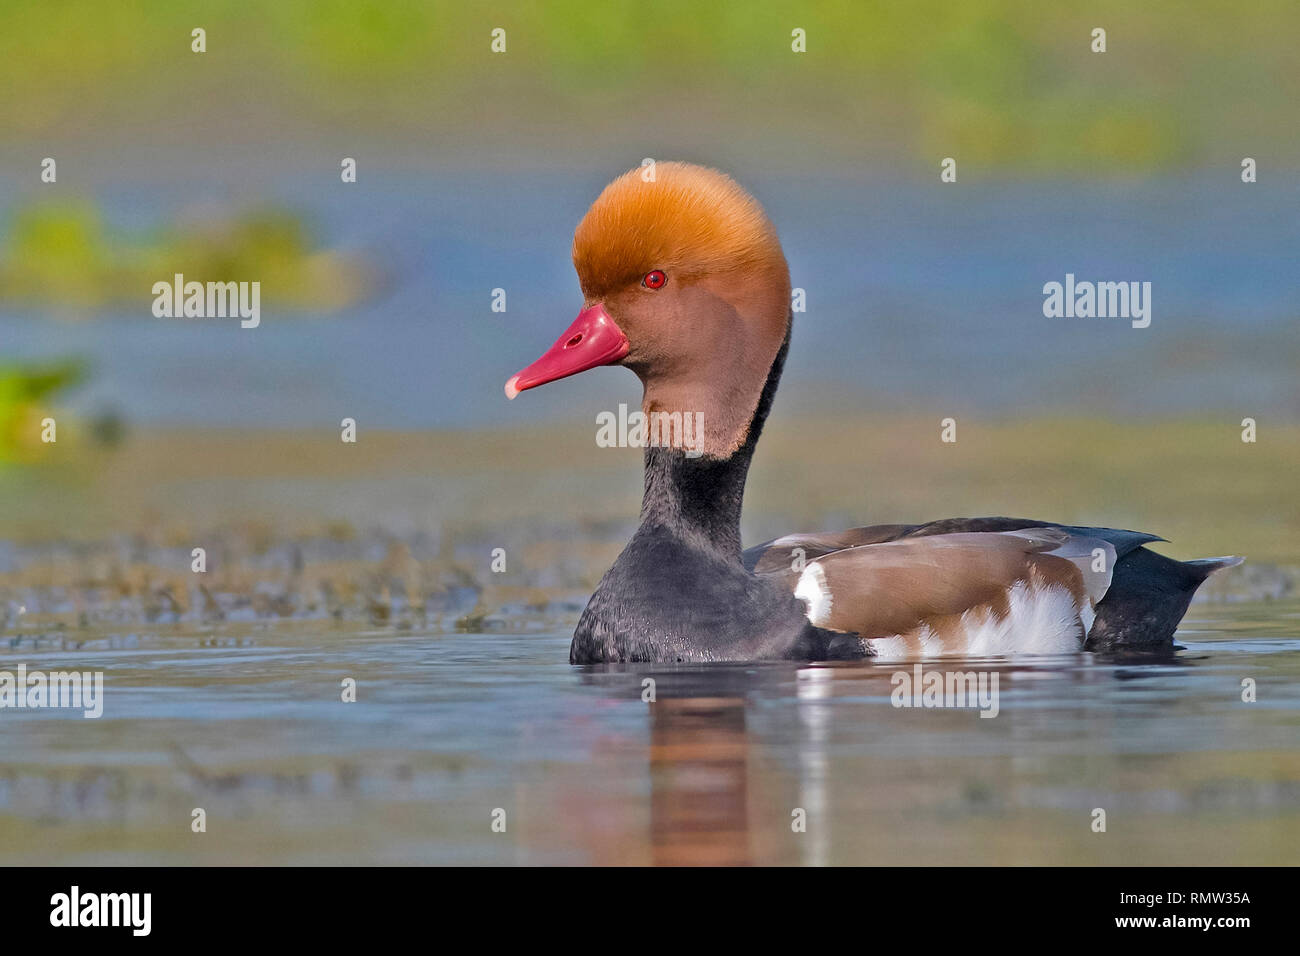 red-crested pochard (male), Netta rufina, roaming the water, Purbasthali Oxbow Lake, West Bengal, India - Stock Image